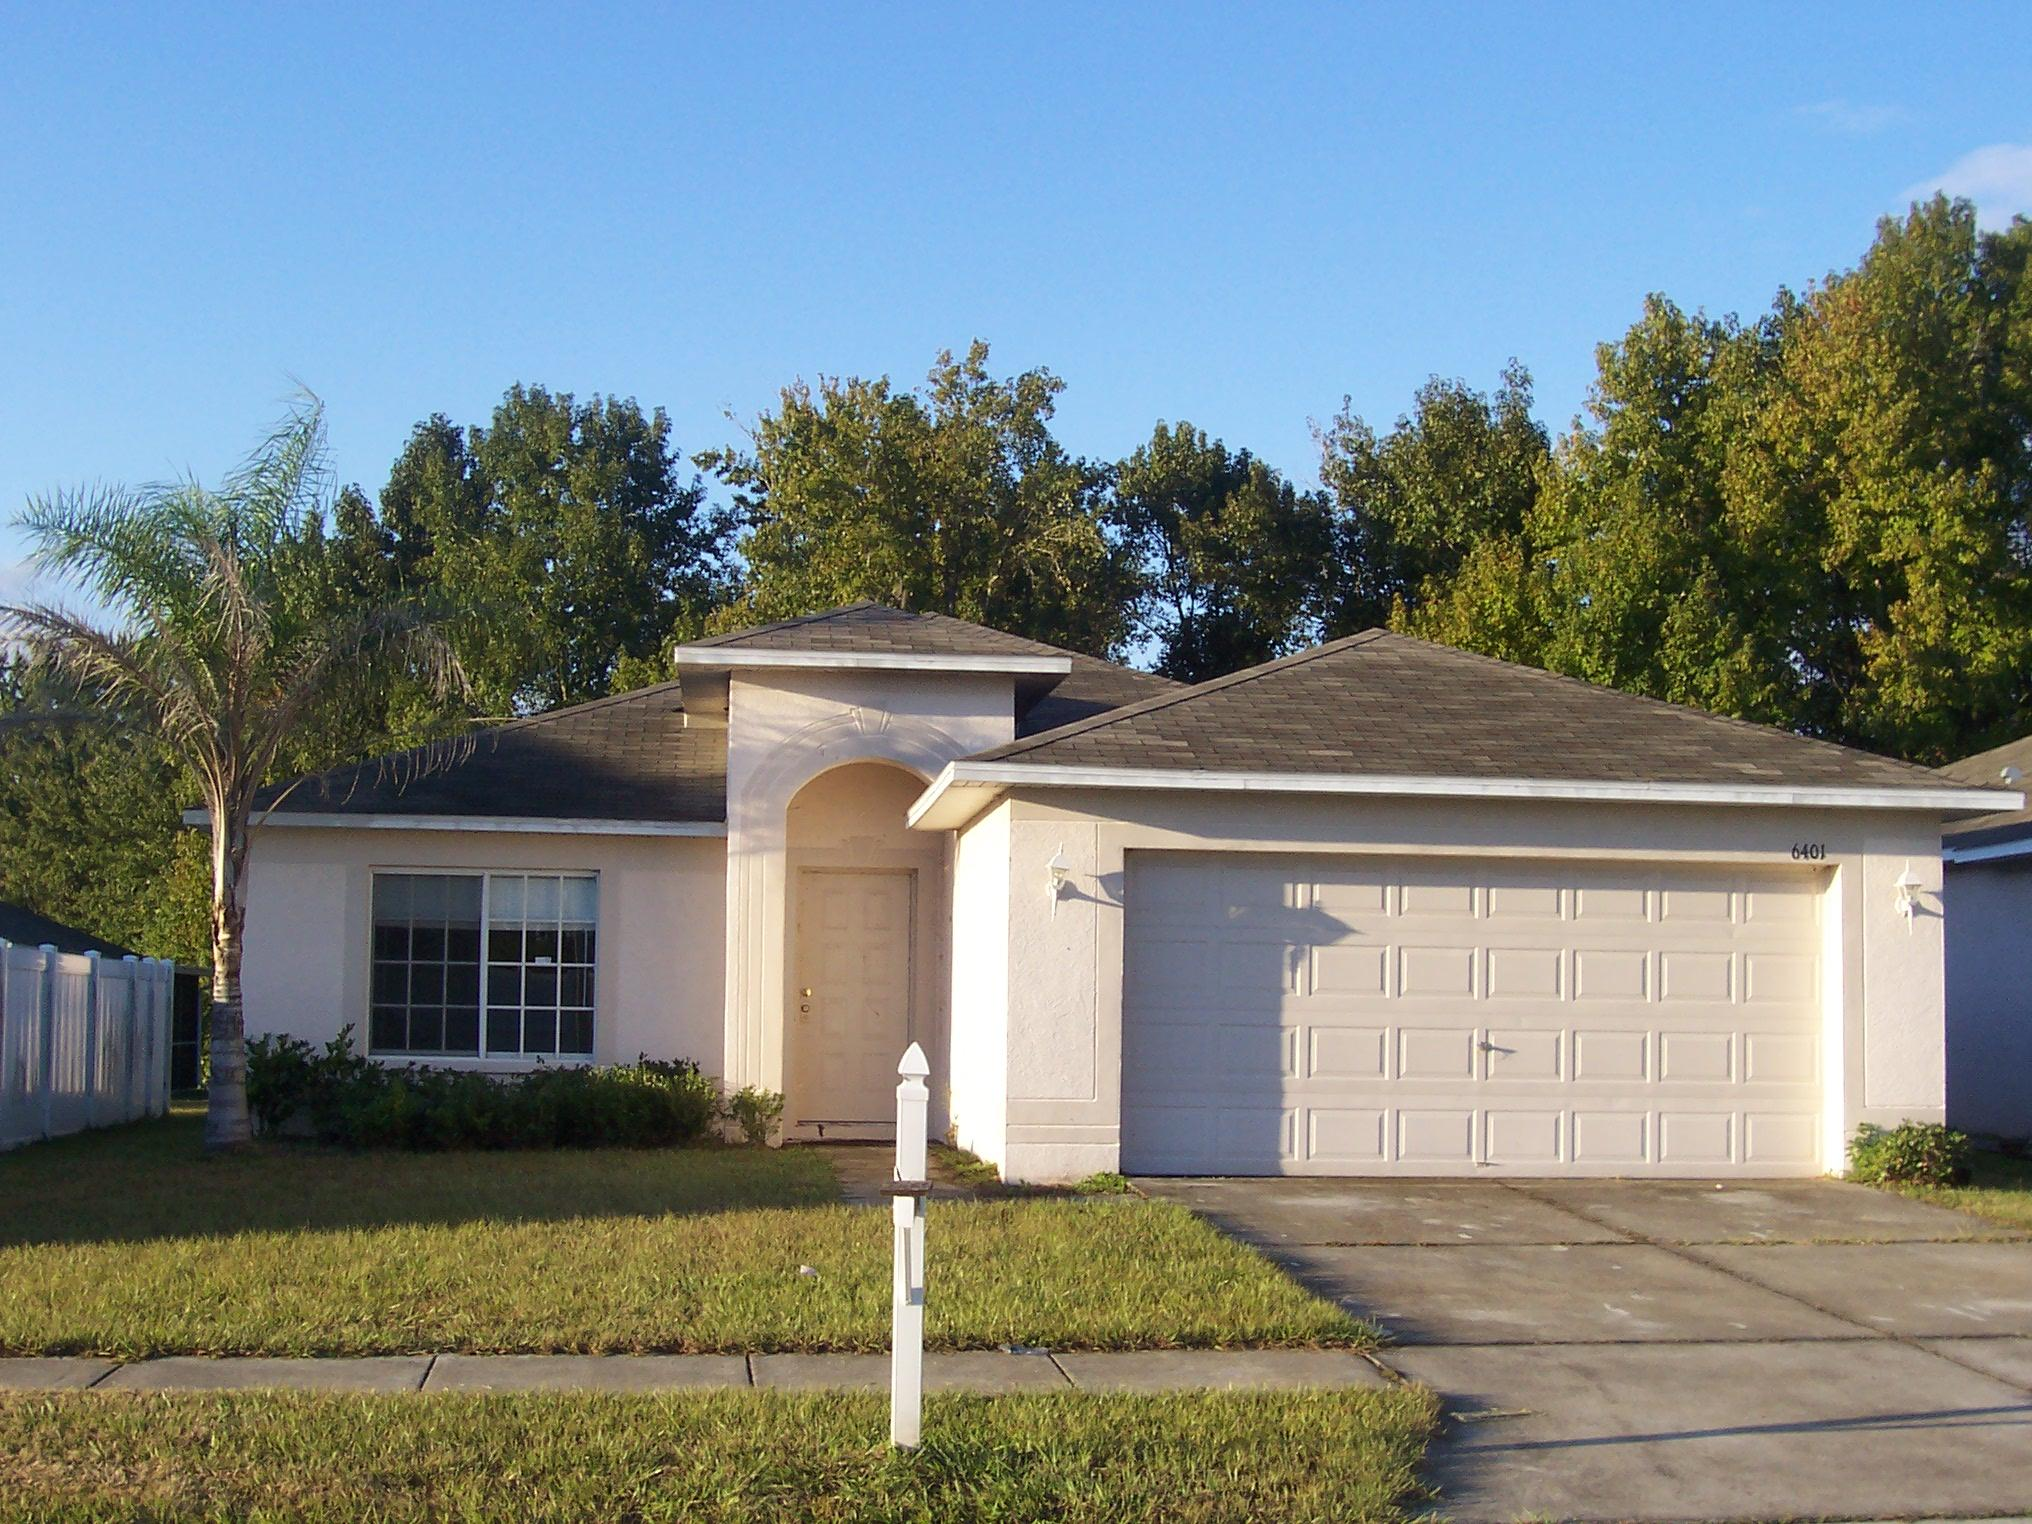 wesley chapel florida cheap houses for sale wesley